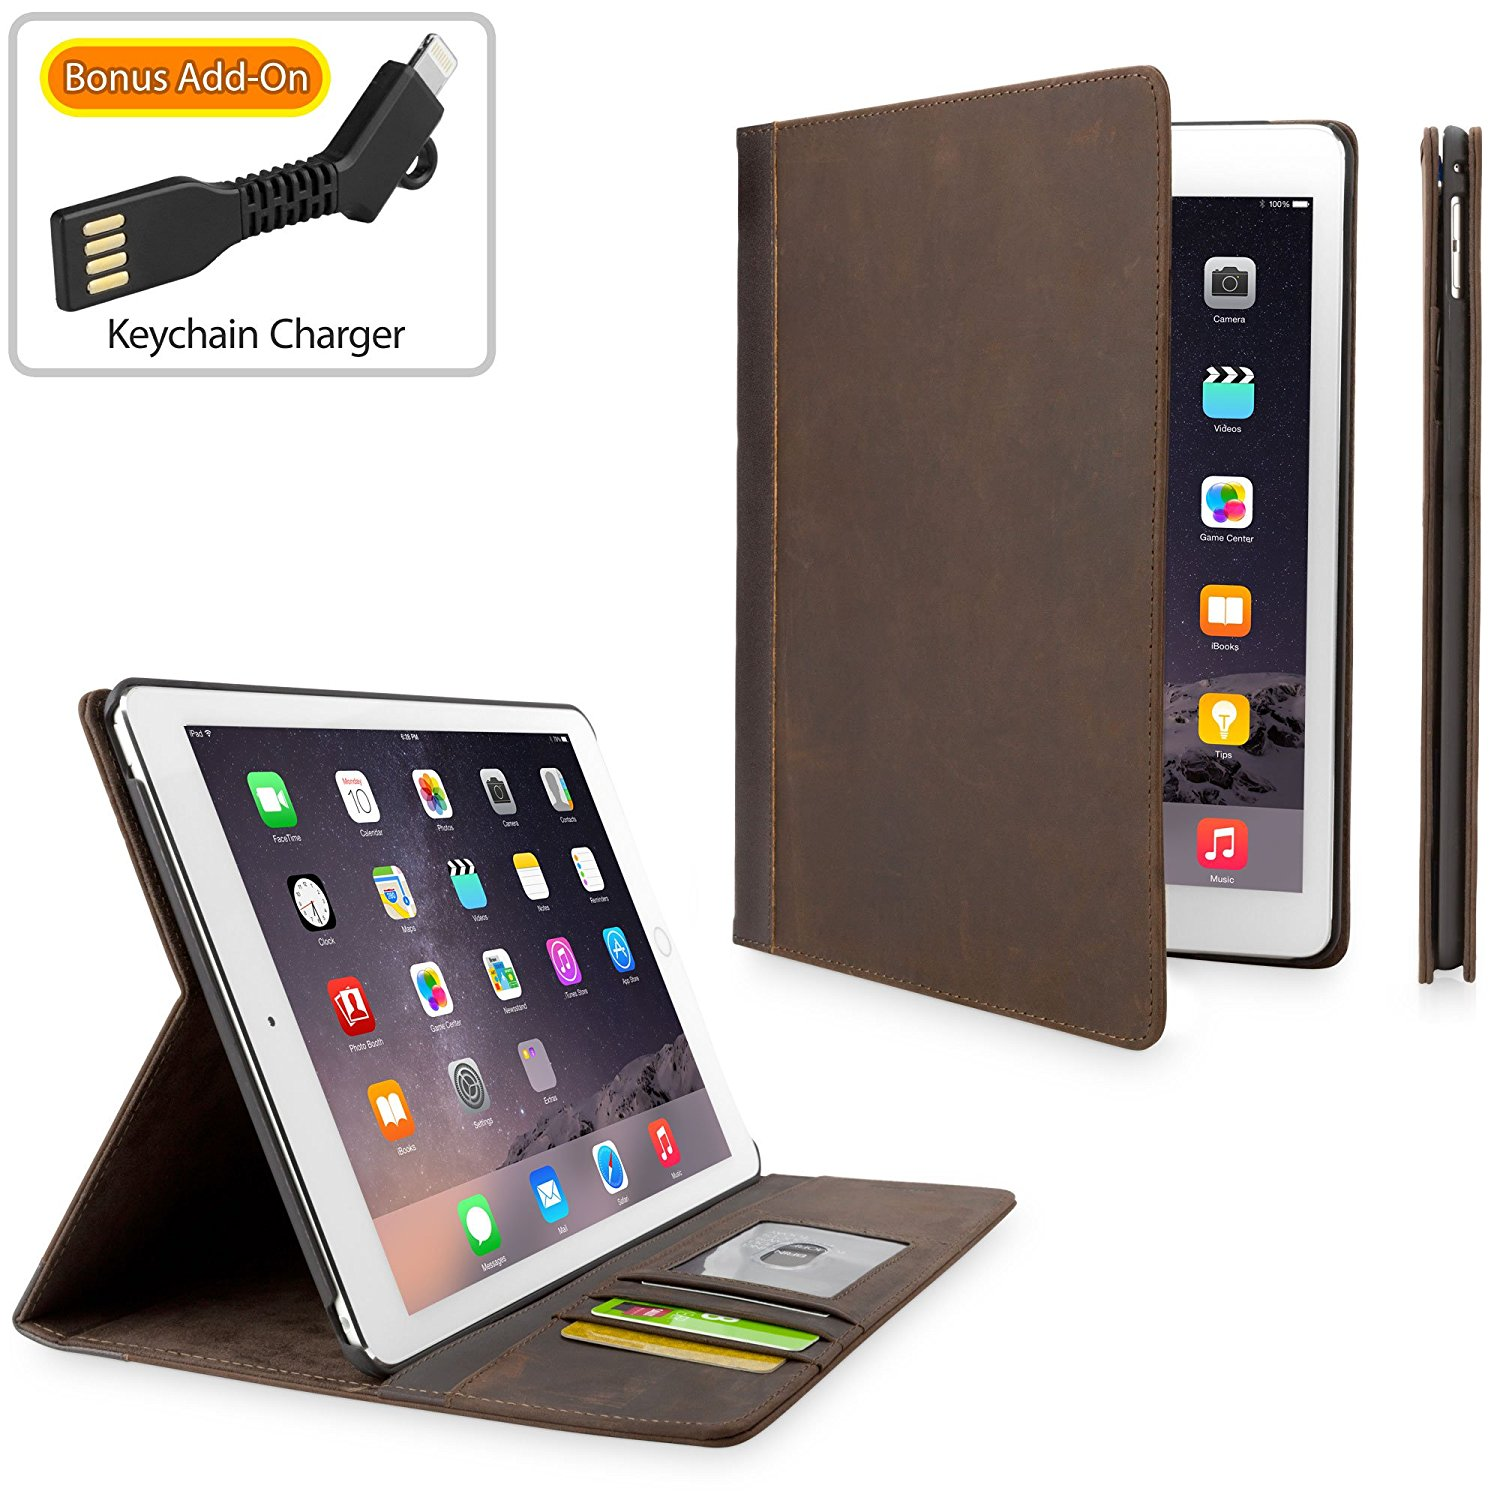 iPad Air 2 Case, BoxWave [Classic Book Case with BONUS Keychain Charger] Vintage Book Design Wallet Cover for Apple iPad Air 2